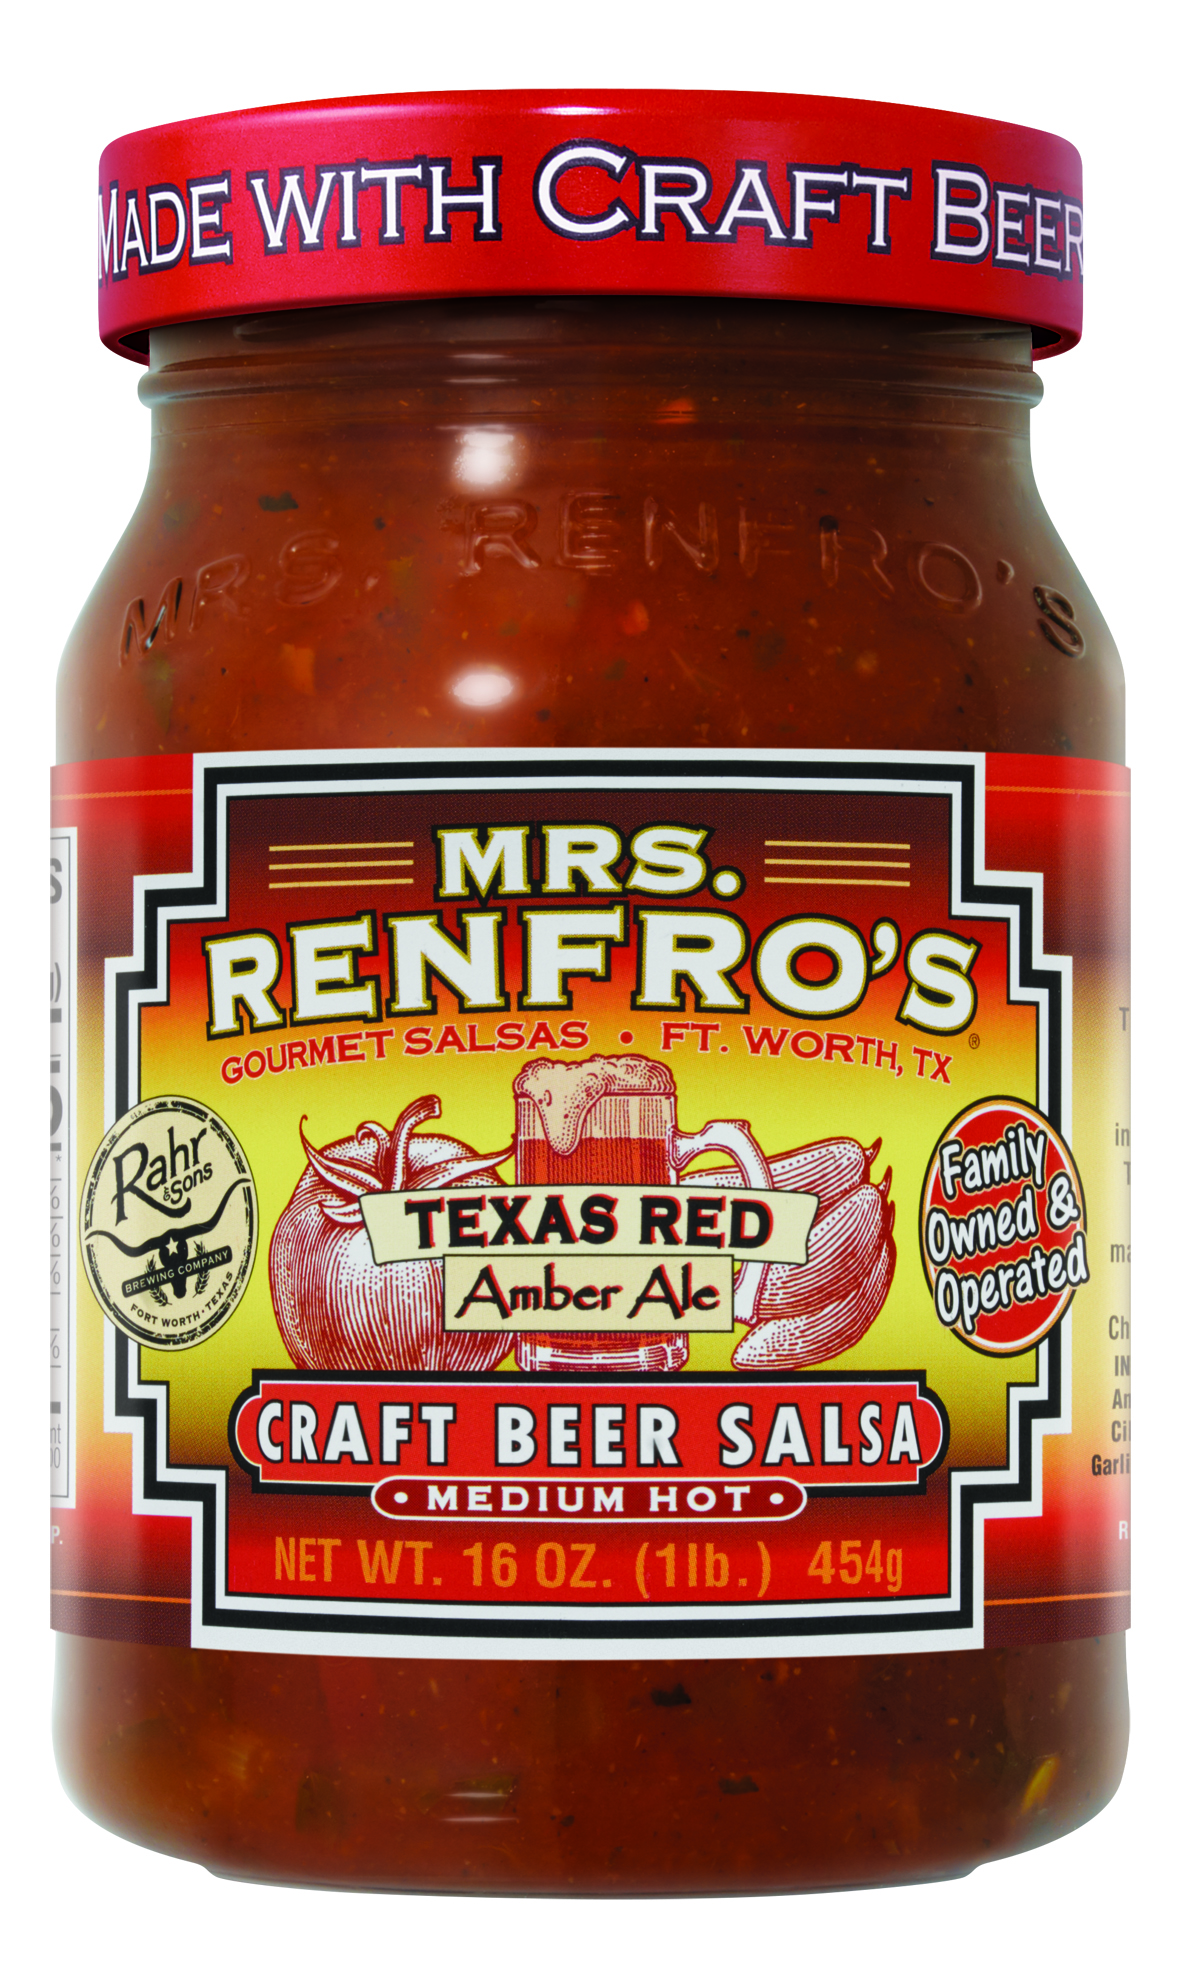 Mrs. Renfro's: Craft Beer Salsa